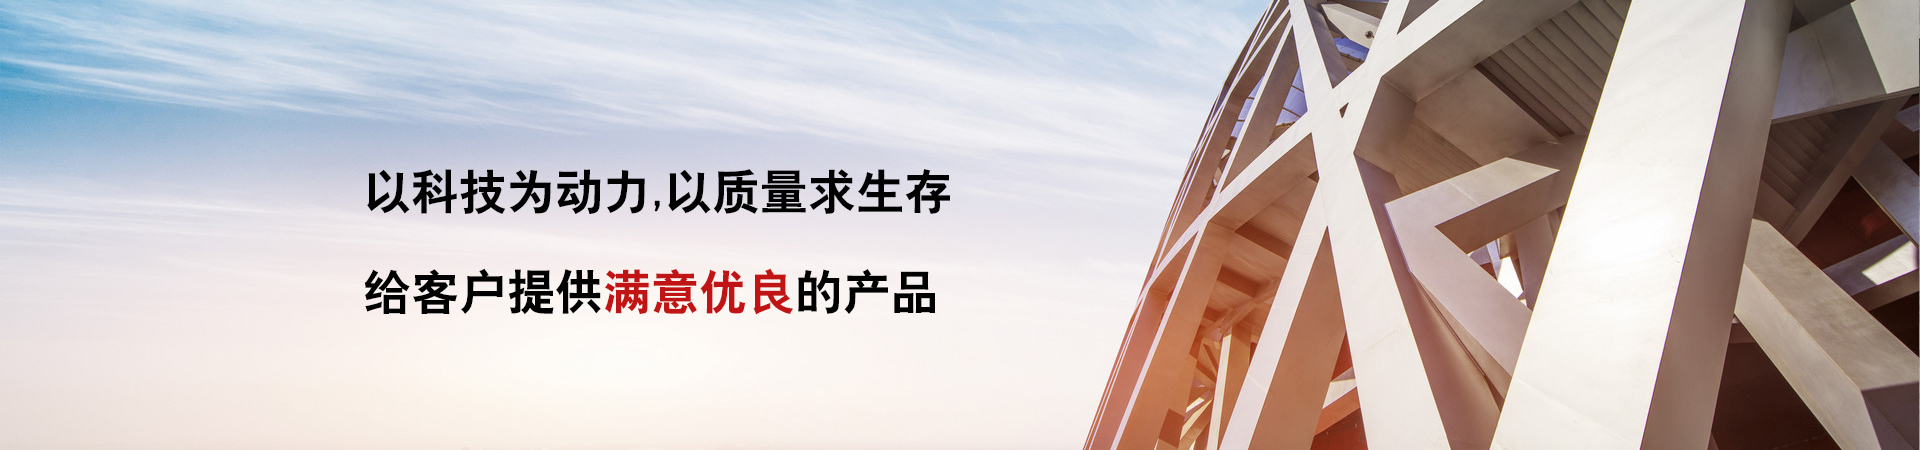 http://www.vestel-tech.cn/data/upload/202003/20200317141856_665.jpg